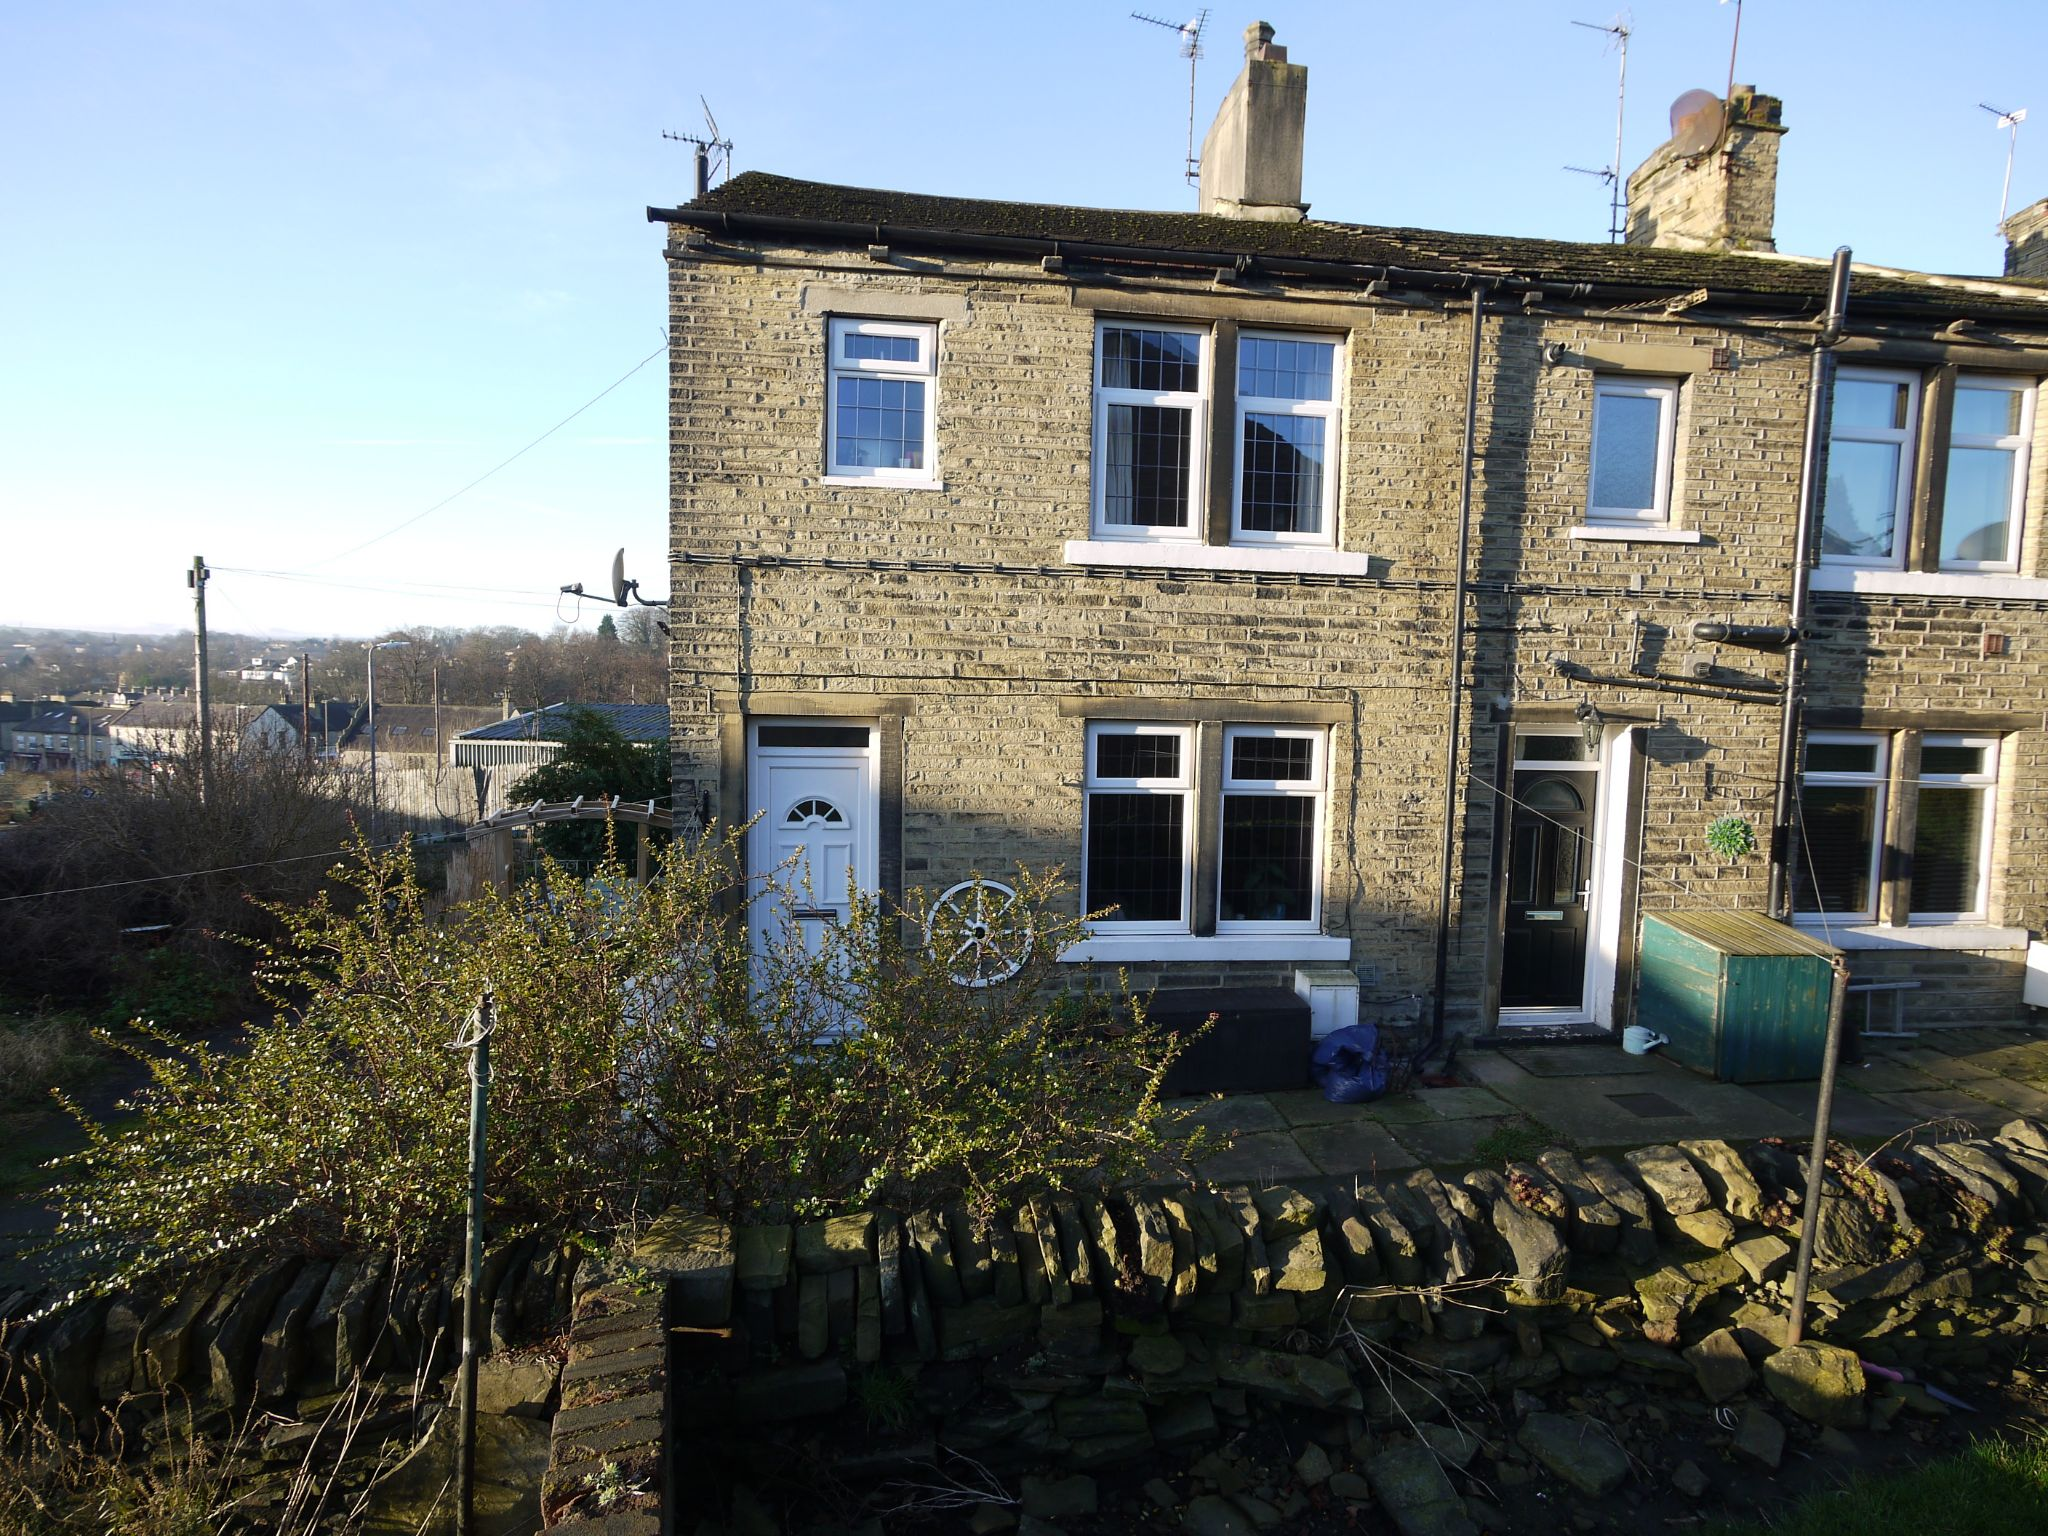 1 bedroom end terraced house SSTC in Brighouse - main shot.